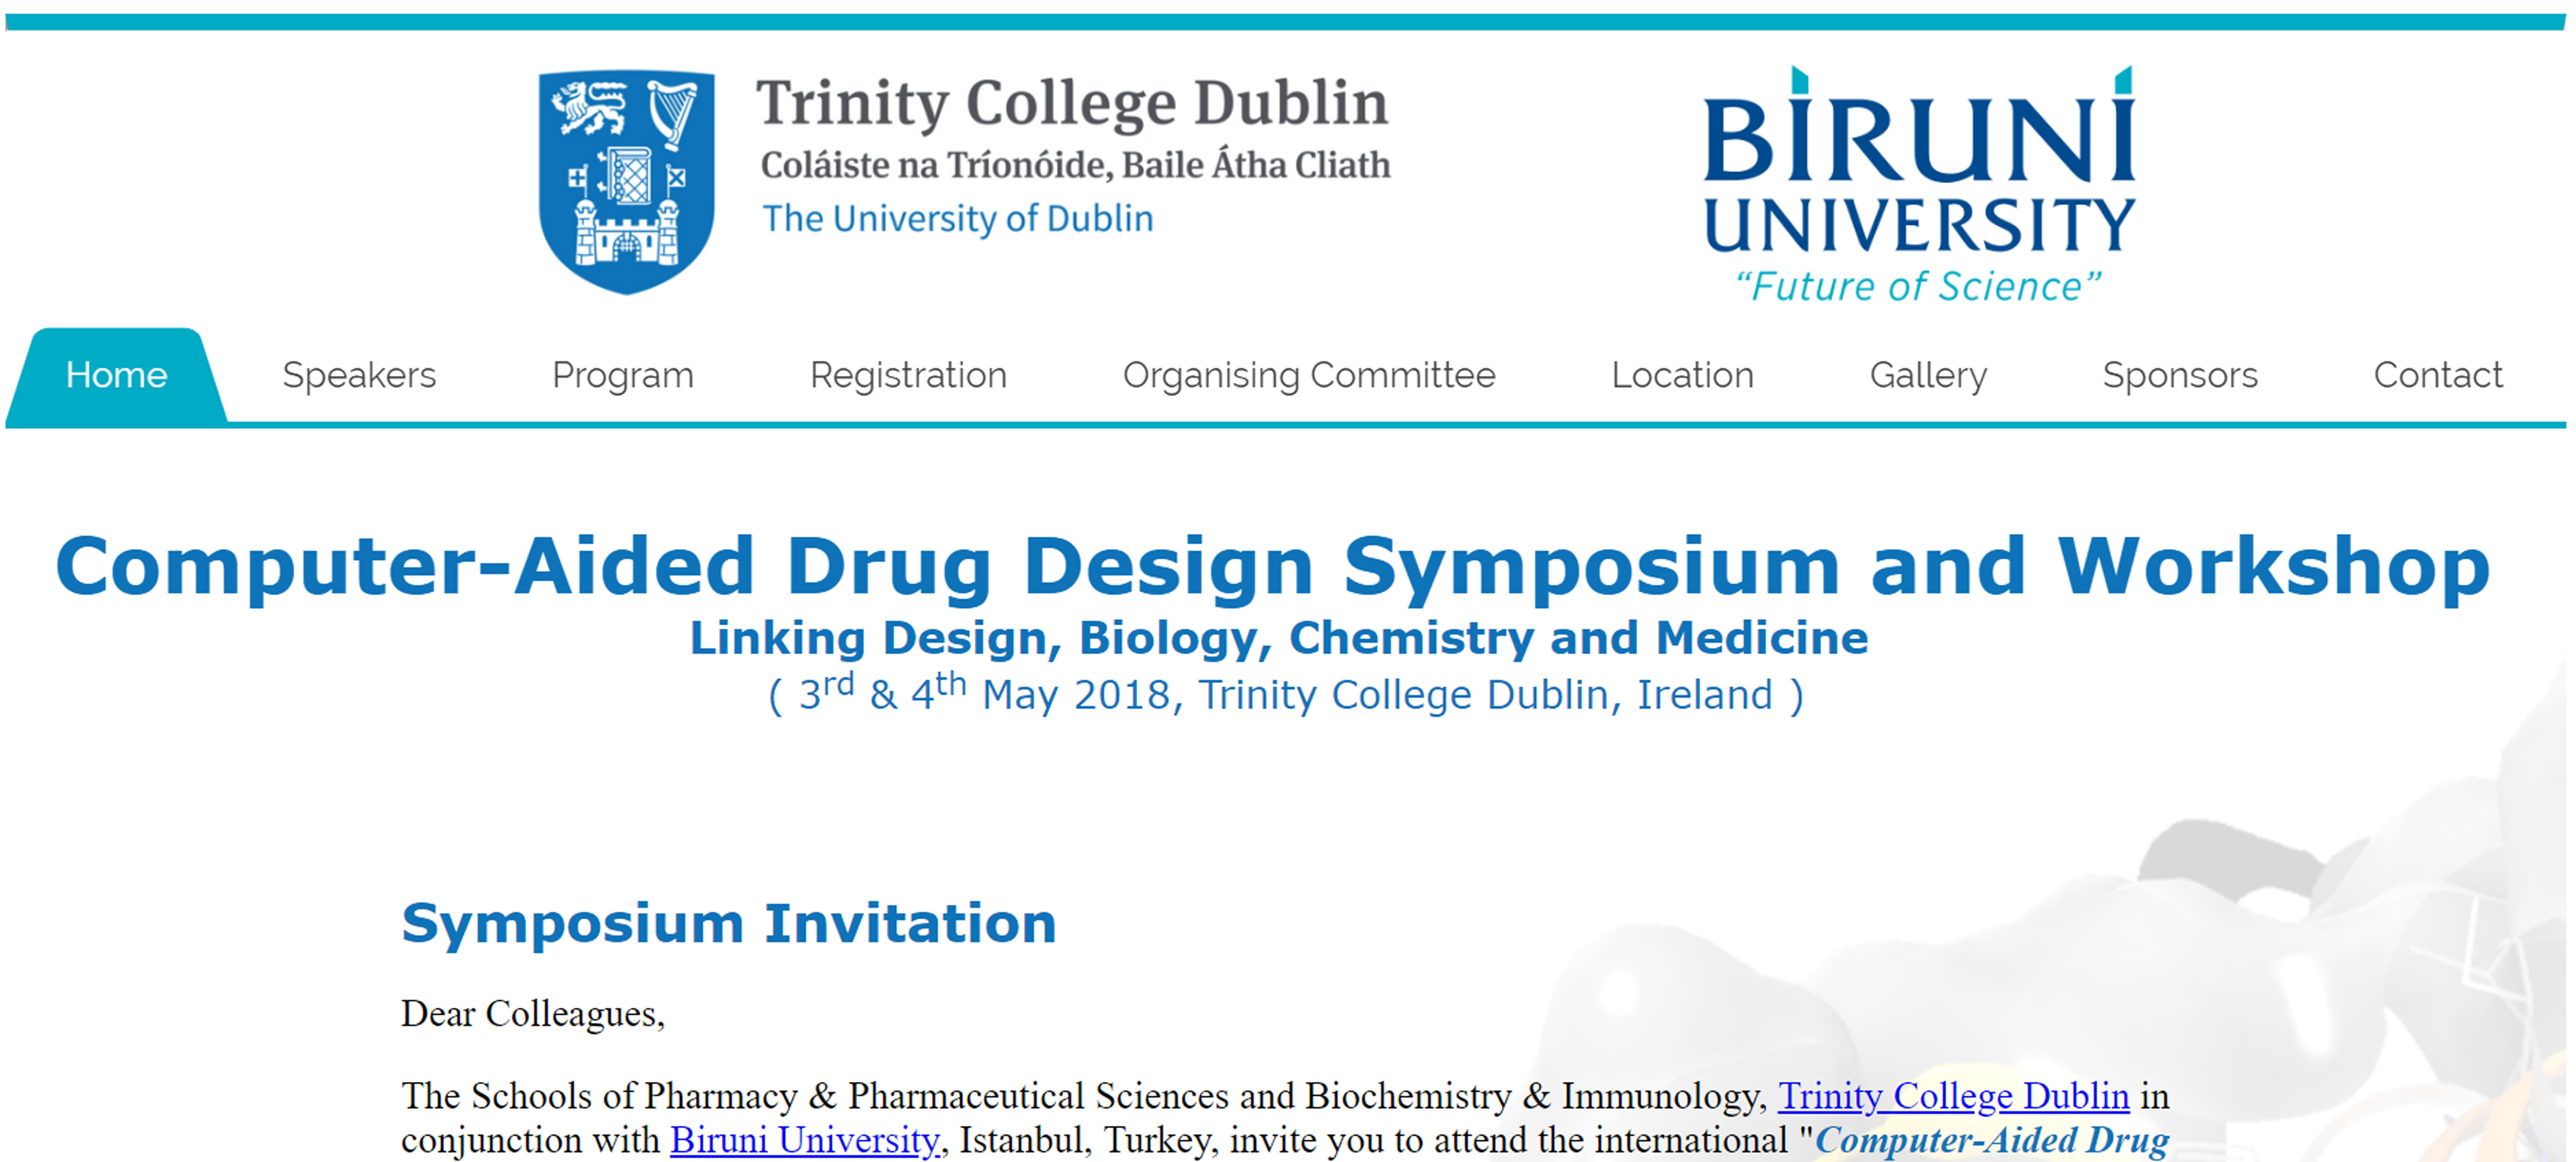 COMPUTER AIDED DRUG DESIGN SYMPOSIUM AND WORKSHOP AT TRINITY COLLEGE DUBLIN IRELAND